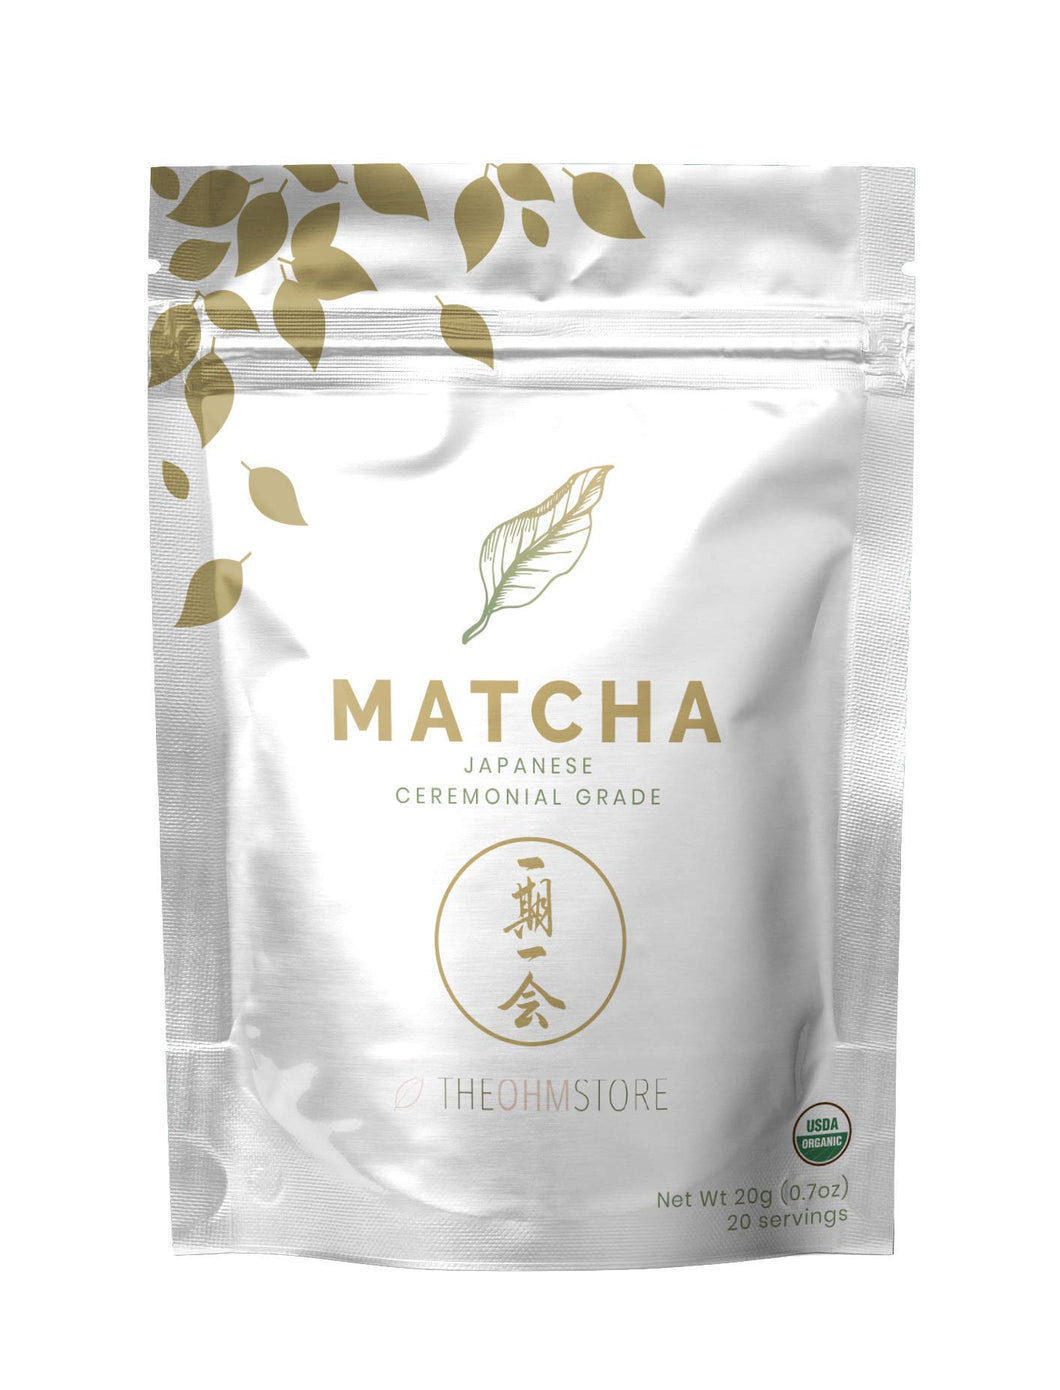 100% Organic Matcha Green Tea Powder ⁠- USDA Certified, Premium Ceremonial Grade, Vegan - MINDFUL ZEBRA